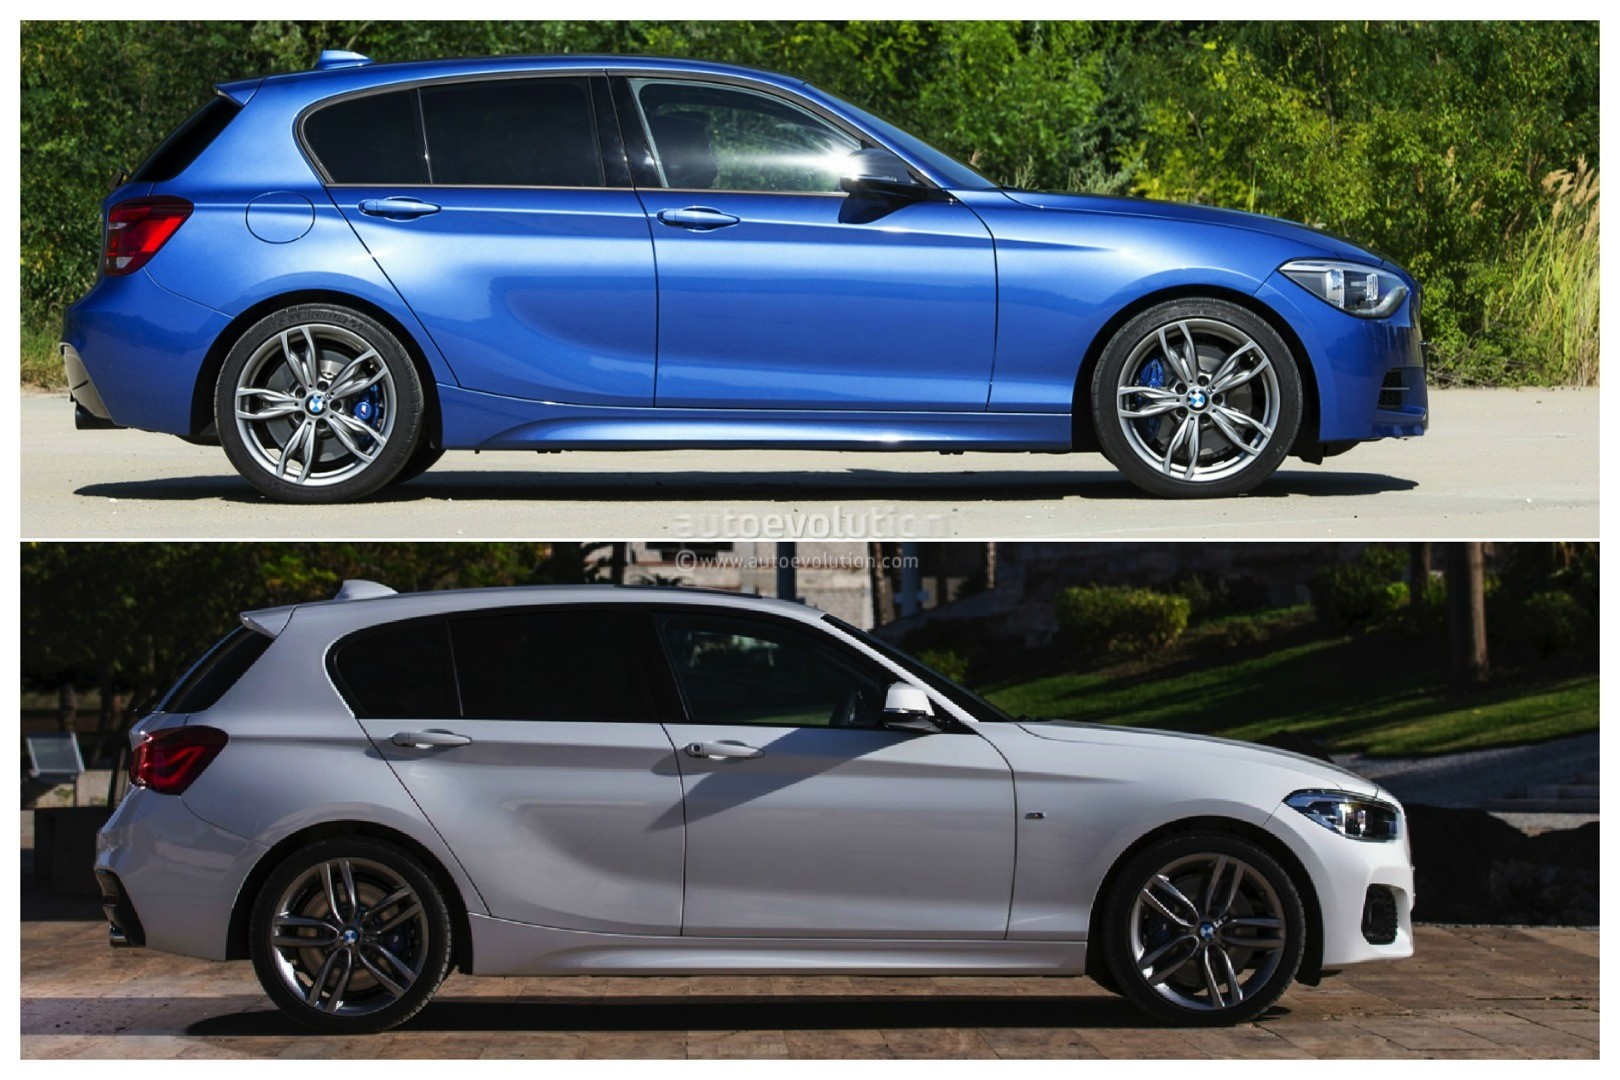 Photo Comparison Bmw F20 1 Series Facelift Versus Bmw F20